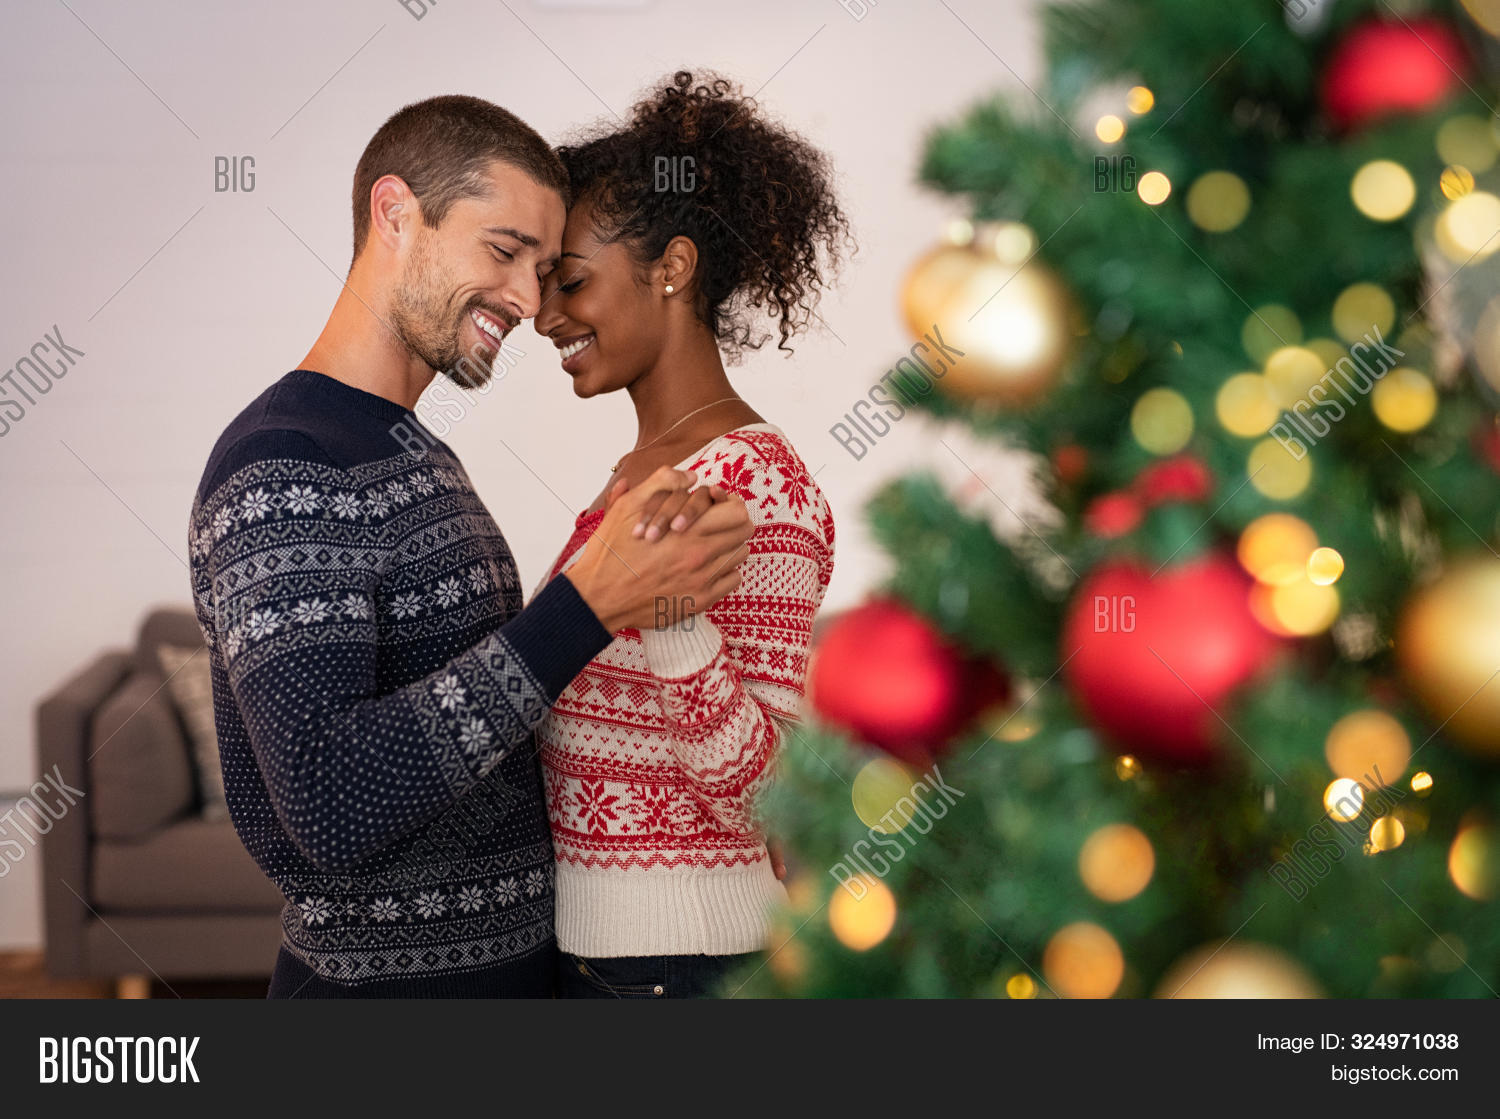 affection,african,american,beautiful,black,celebrate,celebration,cheerful,christmas,christmas decoration,christmas eve,christmas tree,couple dancing,couple in love,dance,dating,decoration,embrace,embracing,emotion,enjoy,eve,family,flirting,happiness,happy,holiday,home,jumper,light,love,loving couple,merry,multi ethnic group,multiethnic,new year eve,new years eve,ornament,red,relax,romance,romantic,romantic couple,sweater,sweet,tender,together,tree,xmas,year